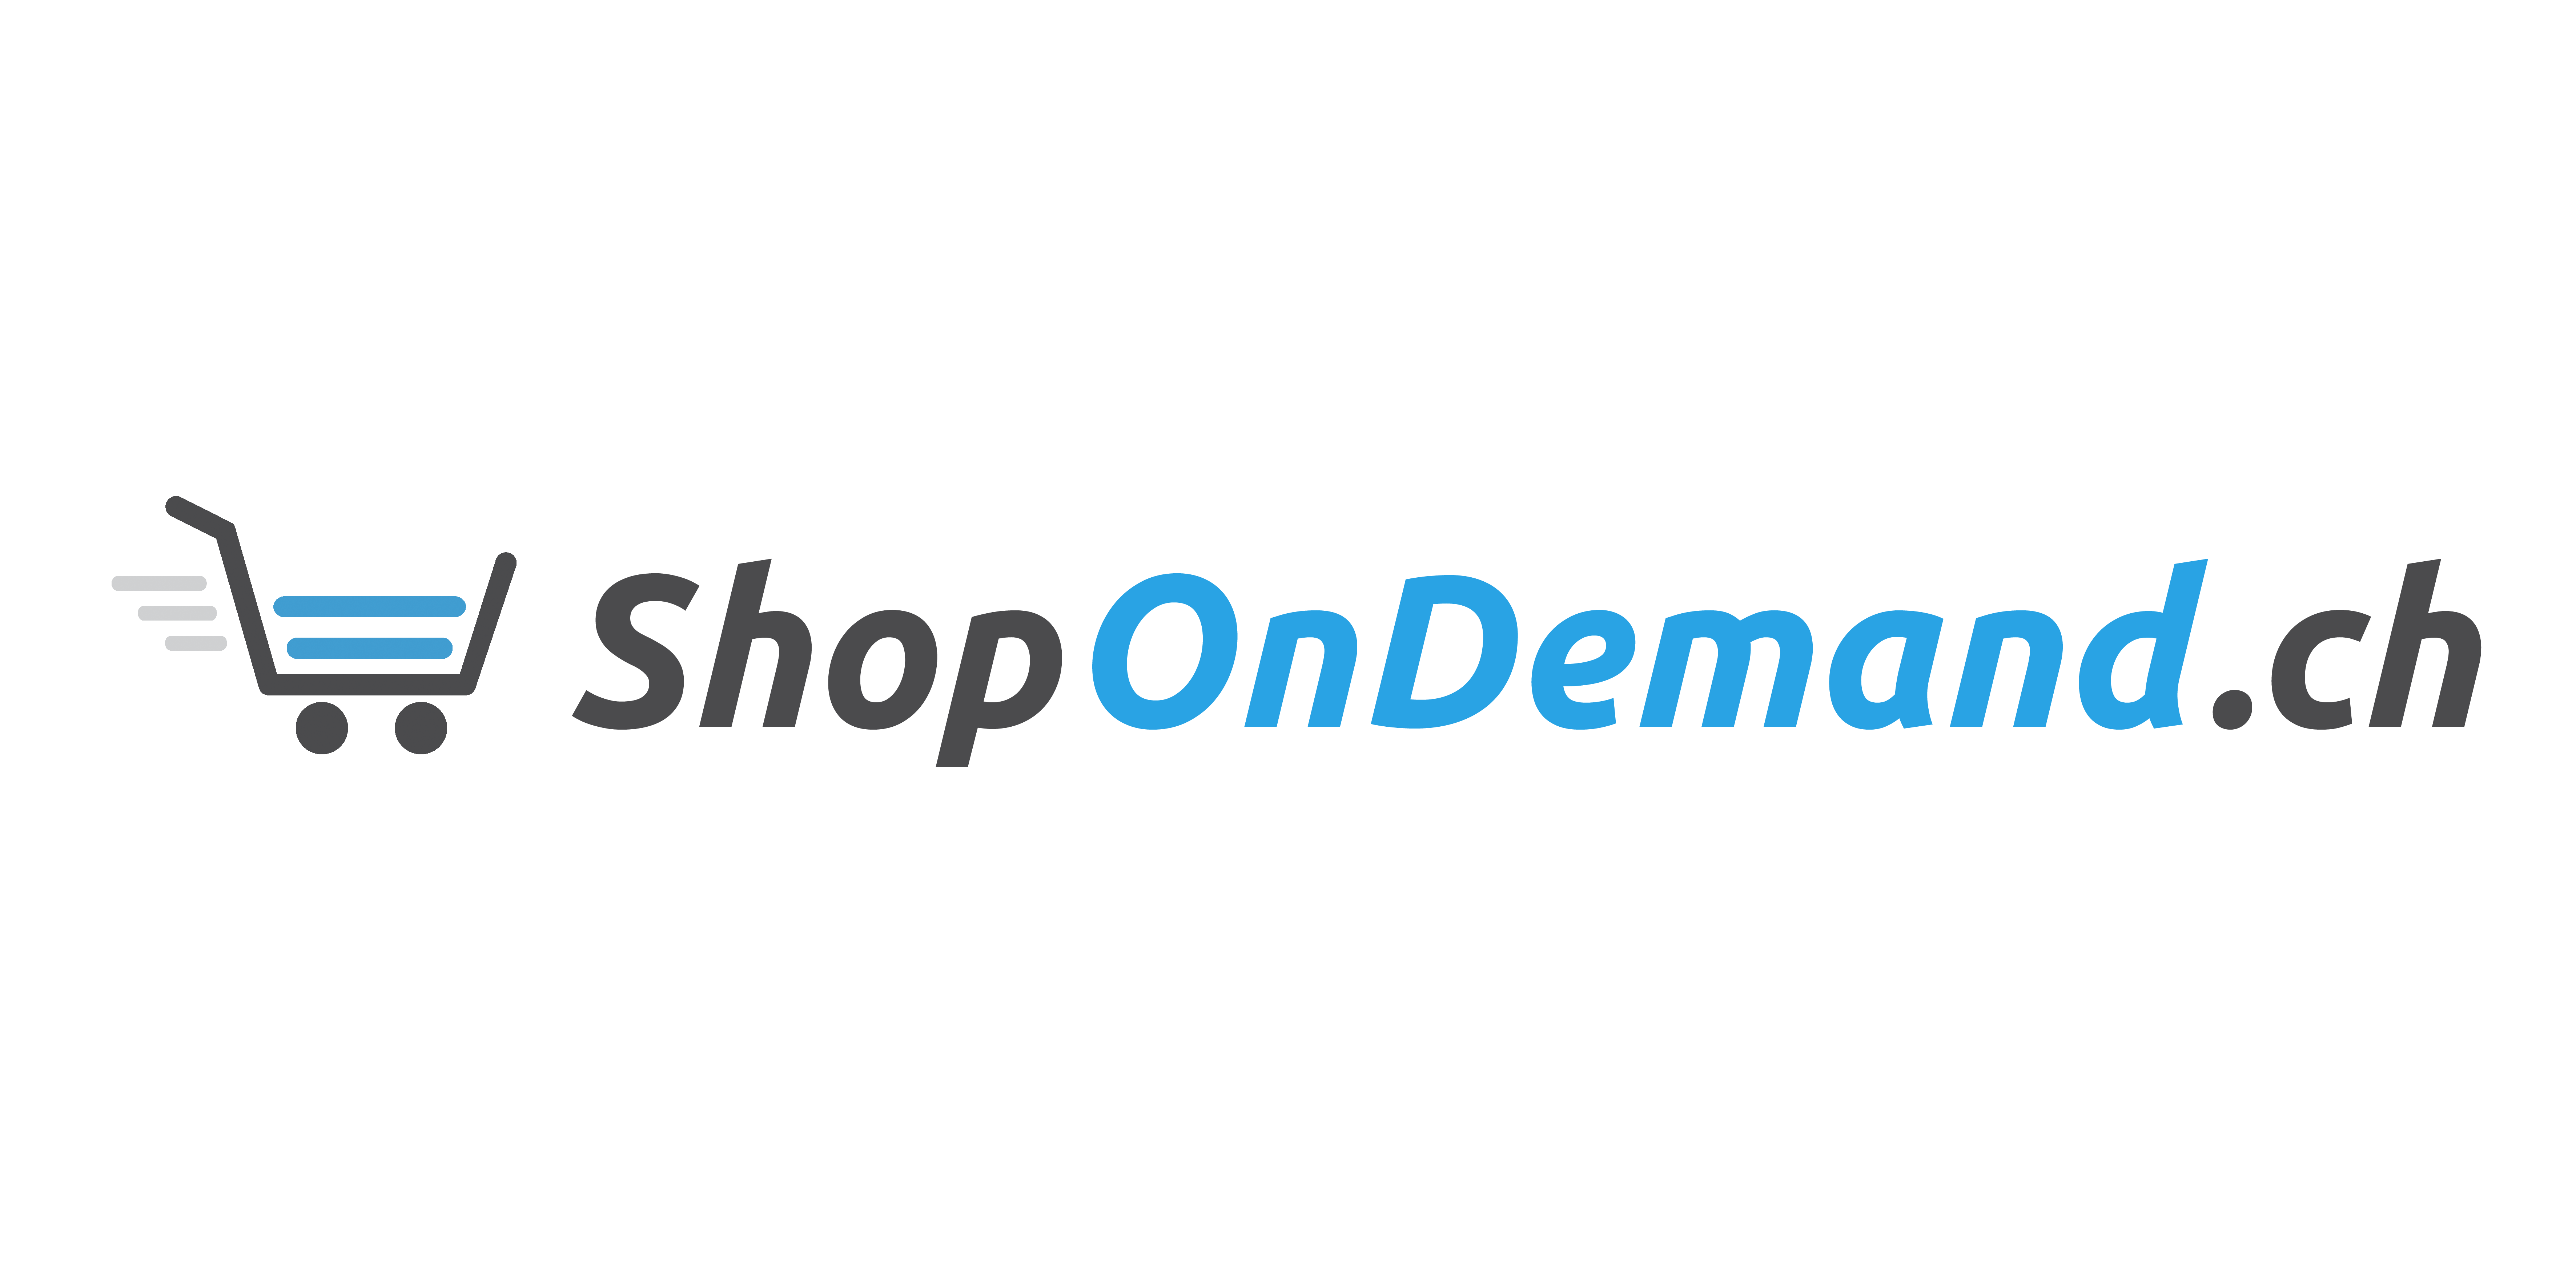 ShopOnDemand